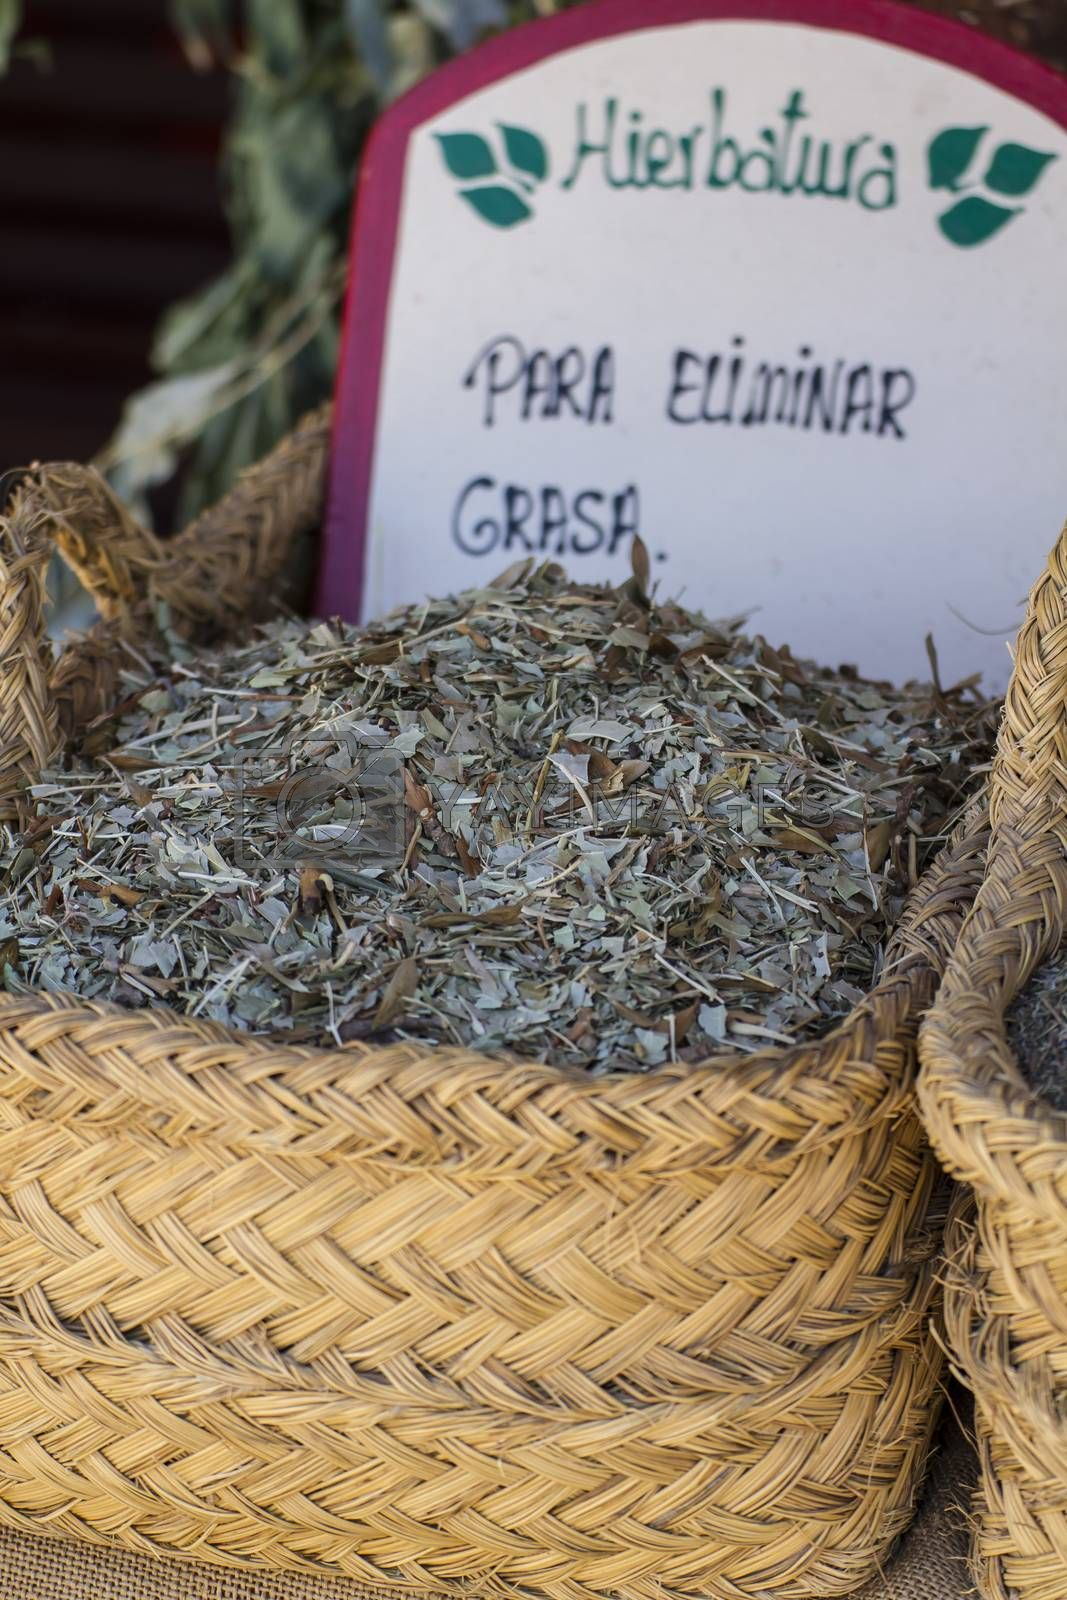 Healthcare, wicker baskets stuffed medicinal healing herbs